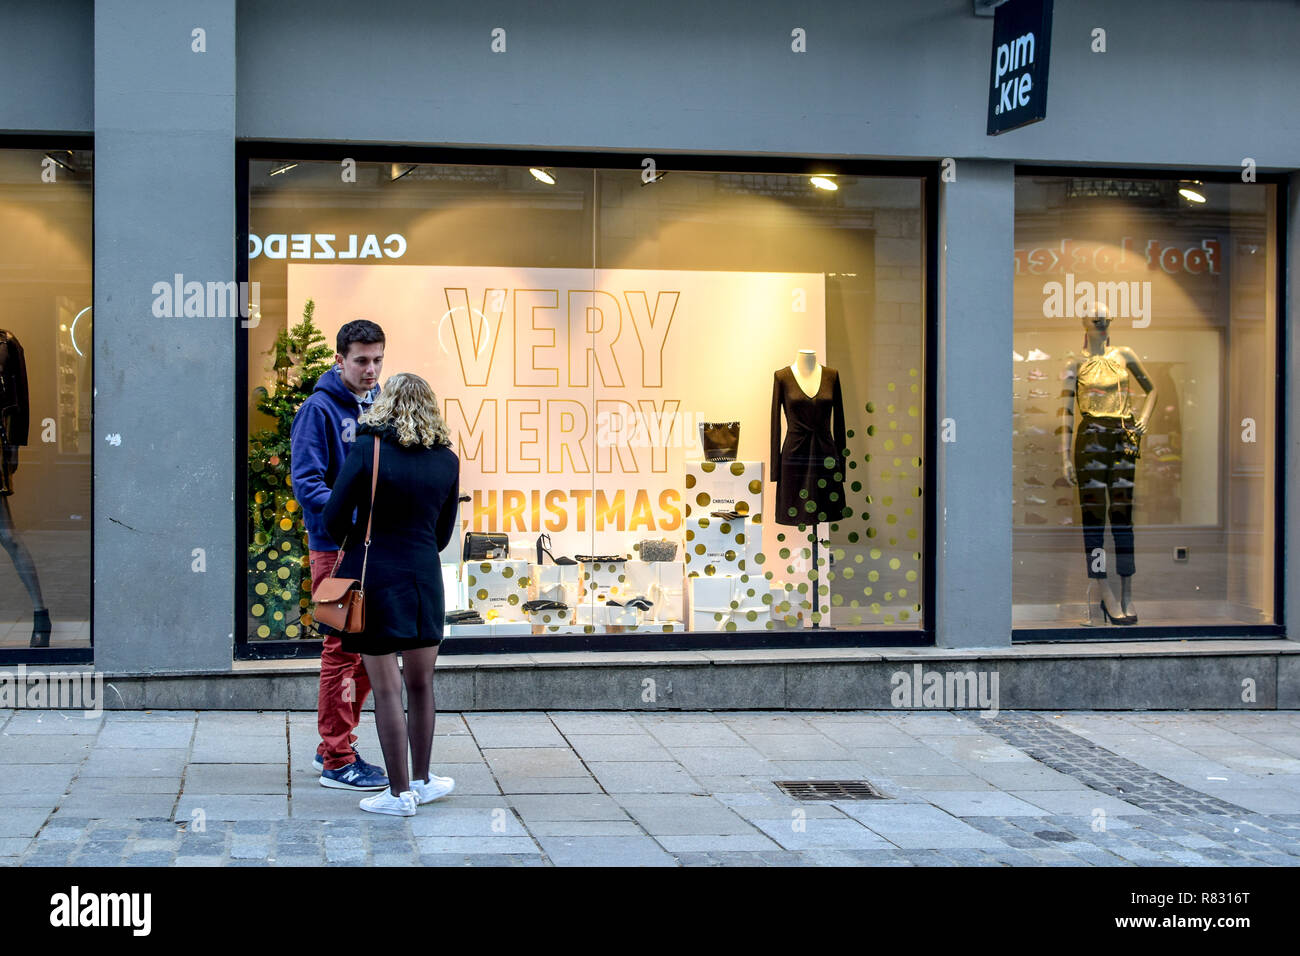 A young couple in Rennes, France stands in front of a storefront display stating 'Very Merry Christmas' in December. - Stock Image